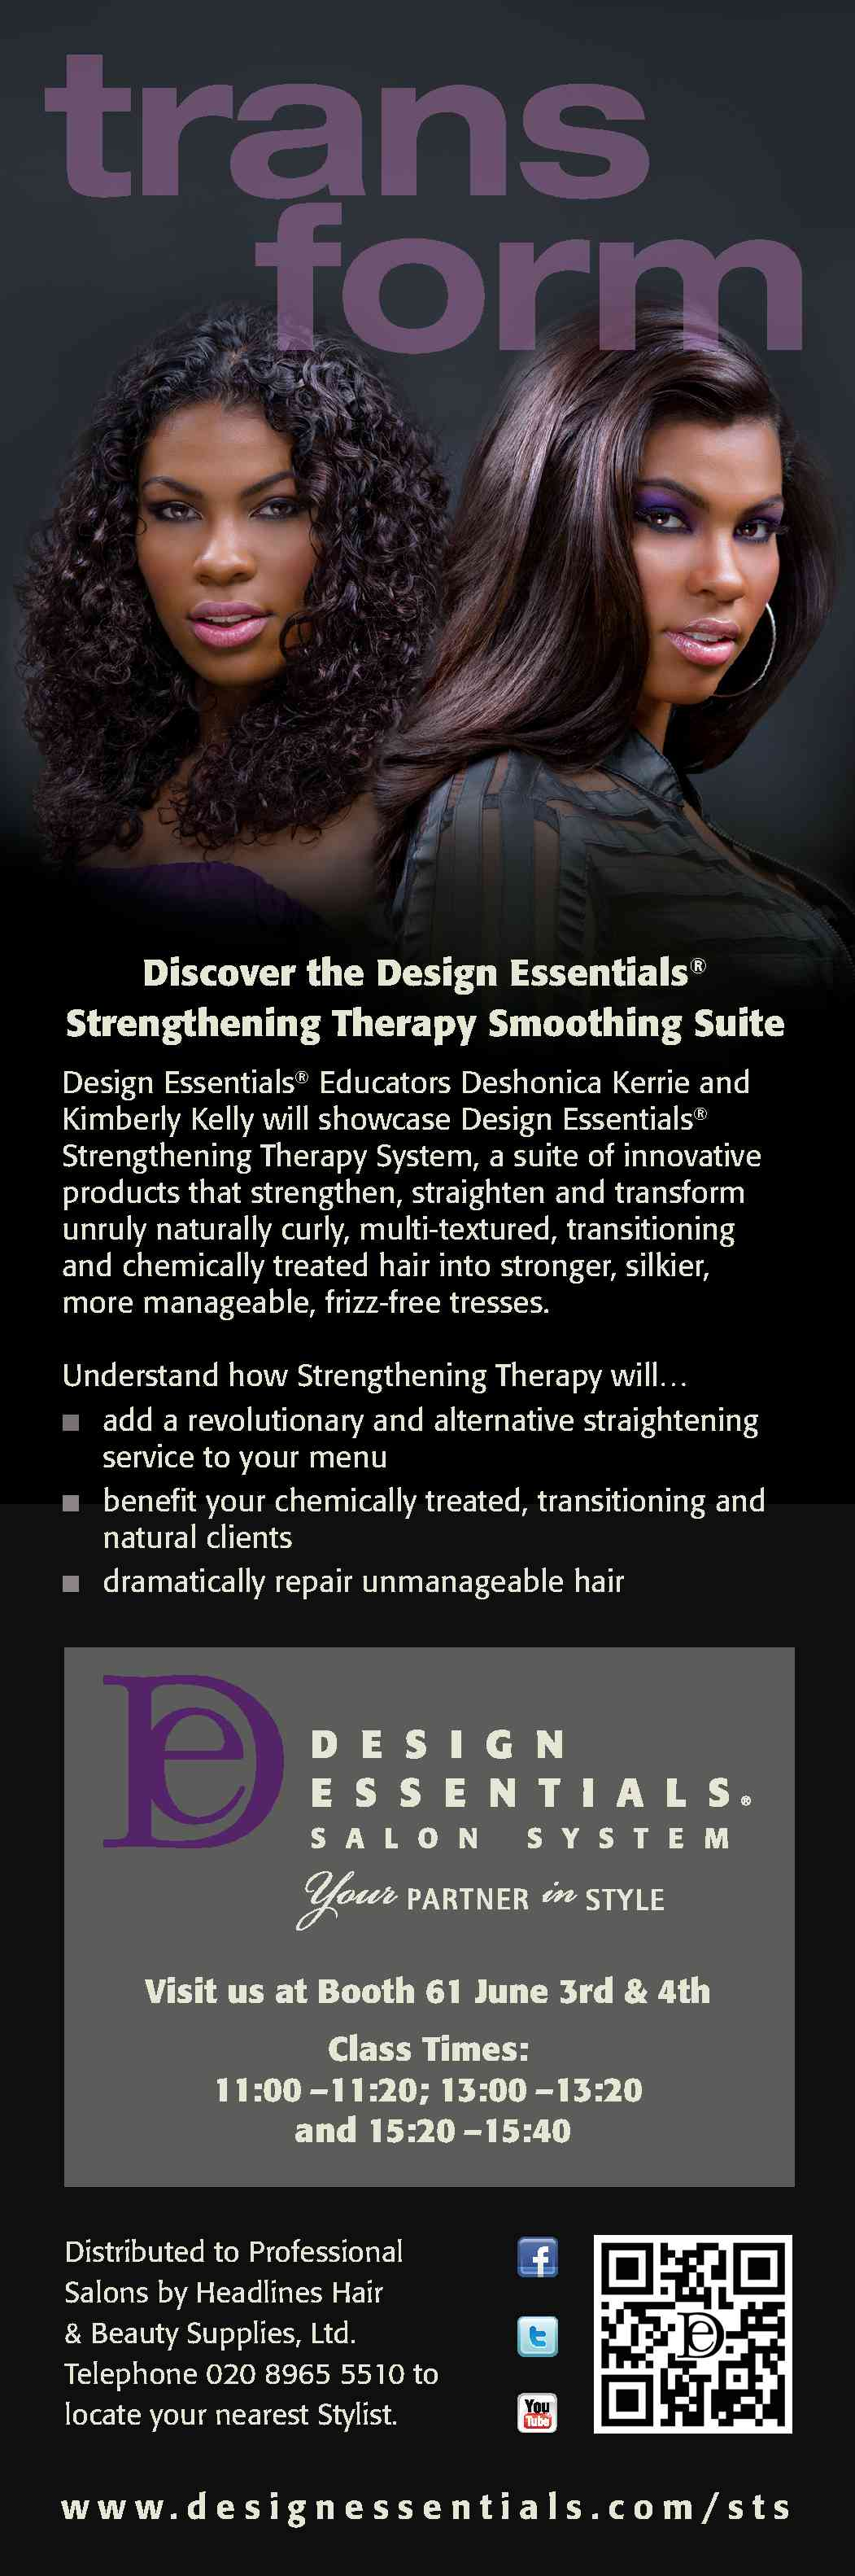 Discover Design Essentialsr Strengthening Therapy System